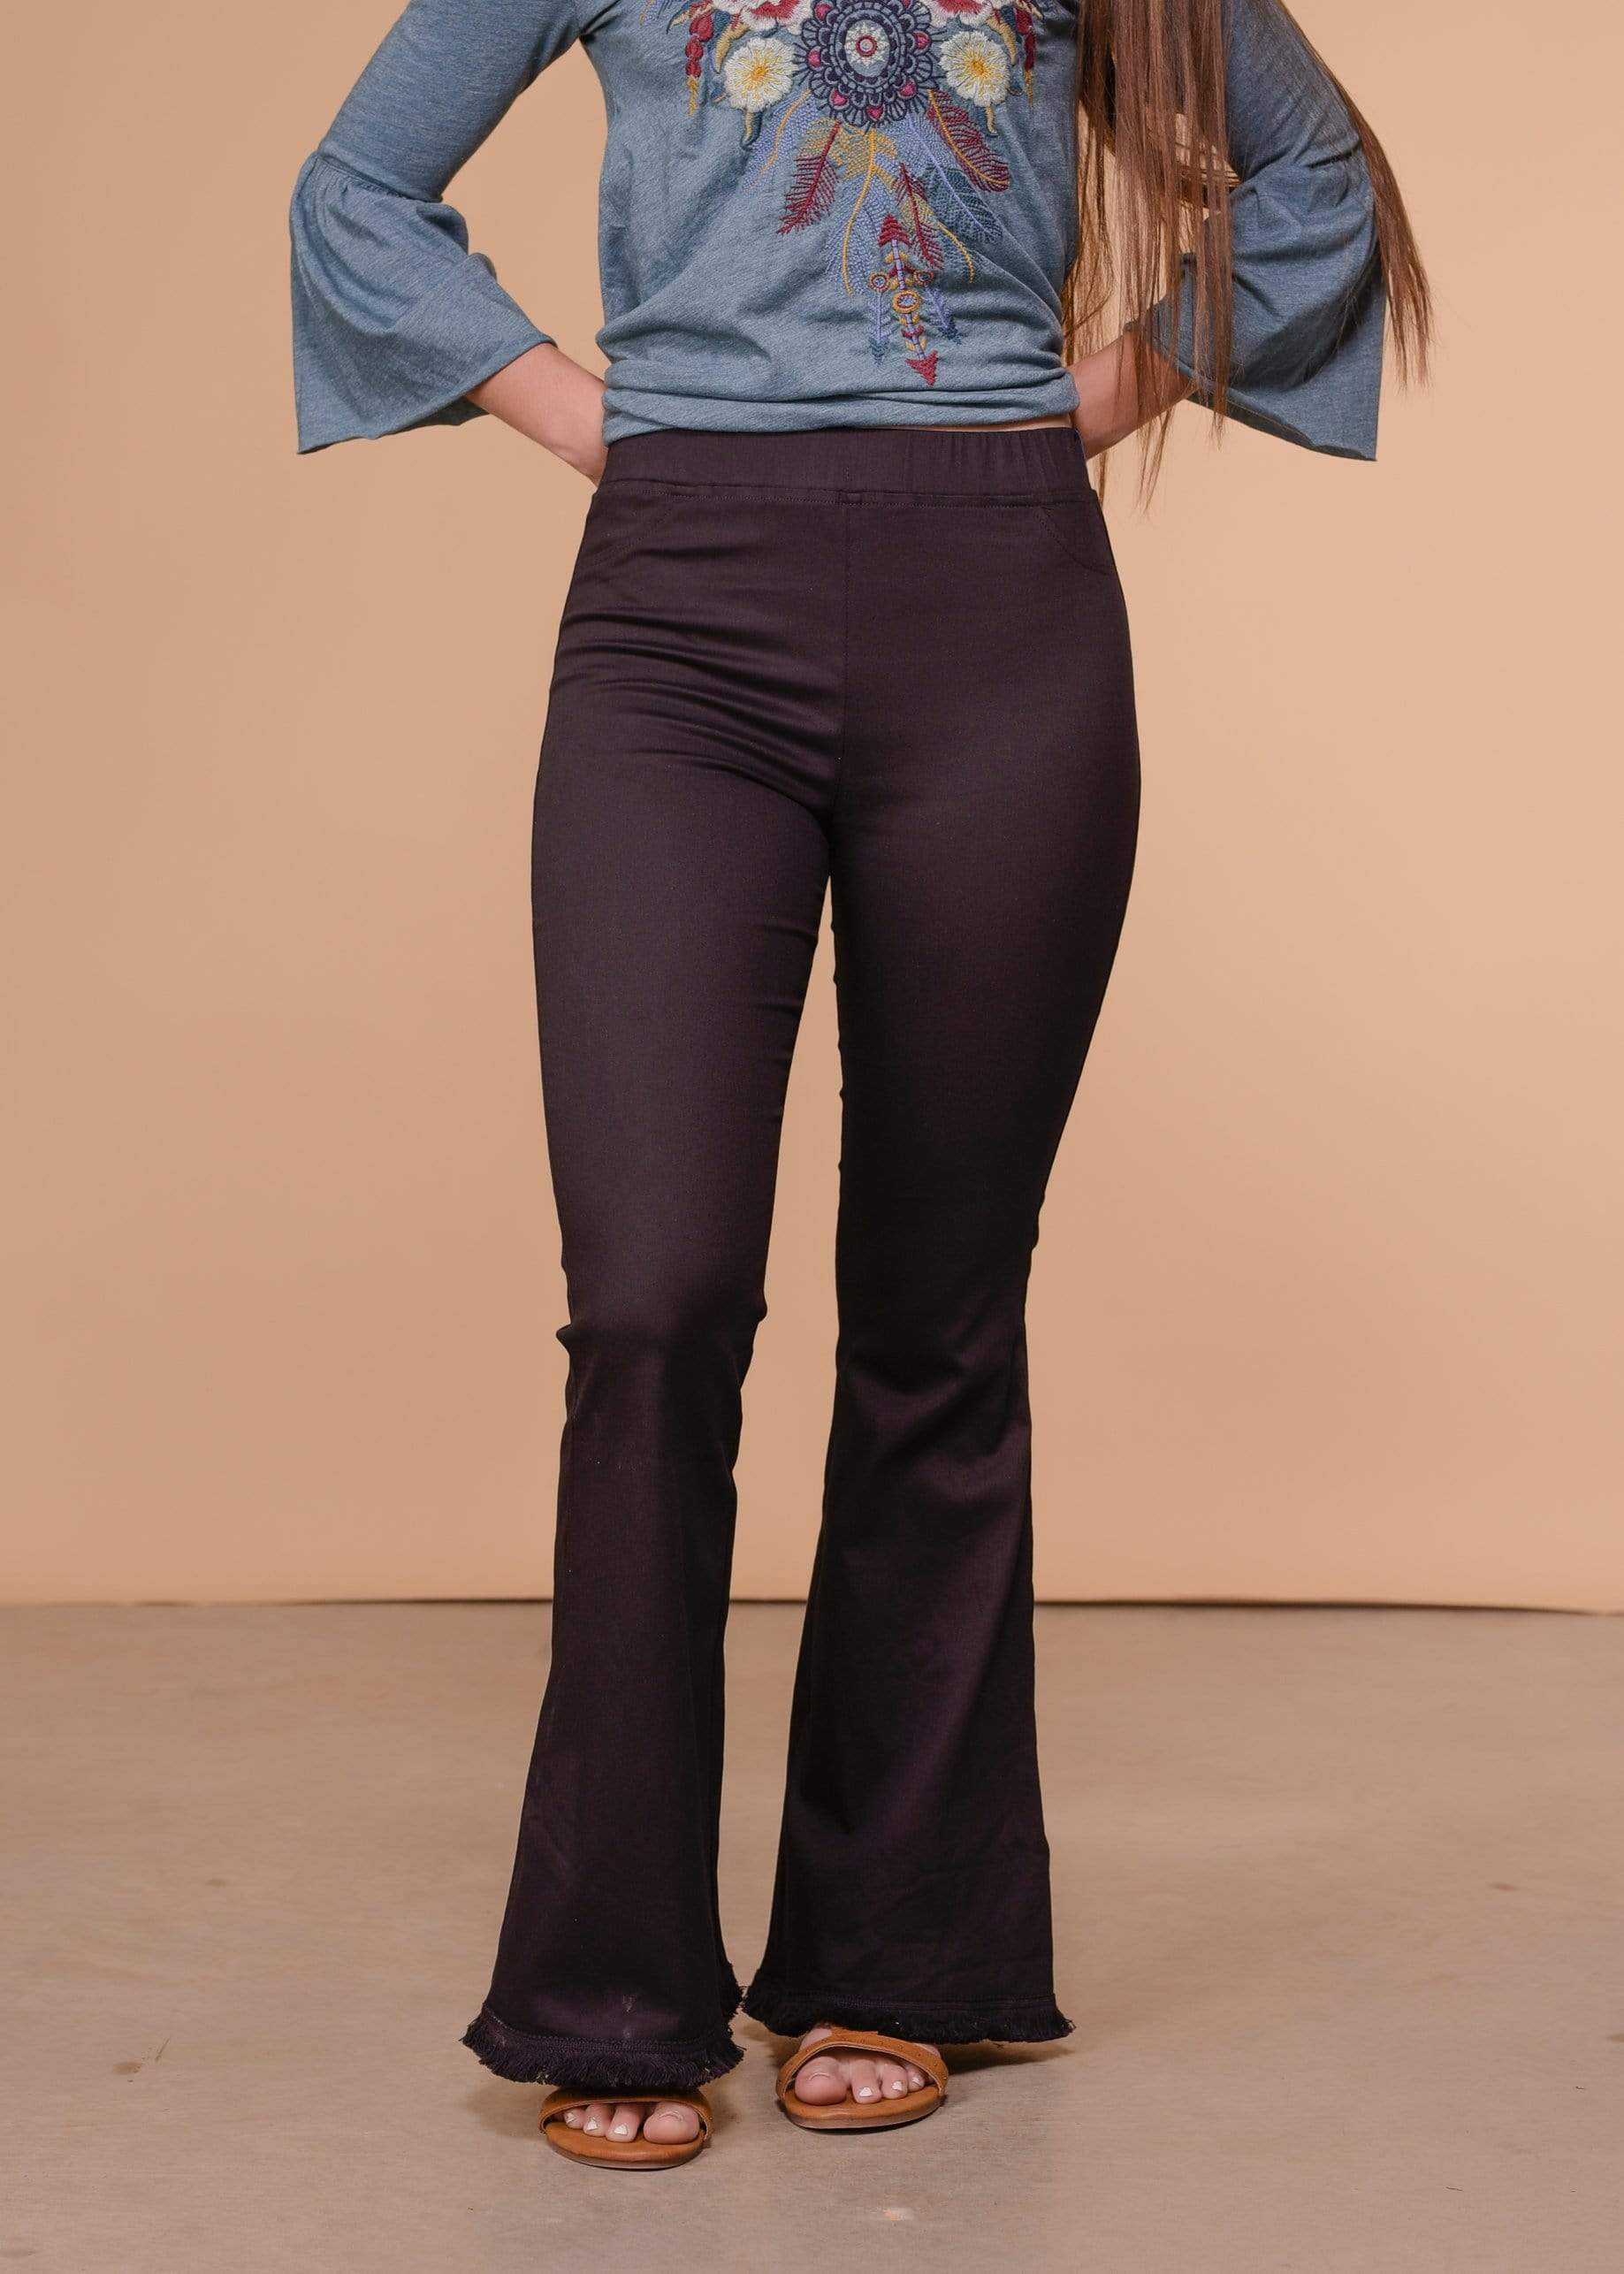 Umgee Full Length Wide Flare Leg Pant - Black